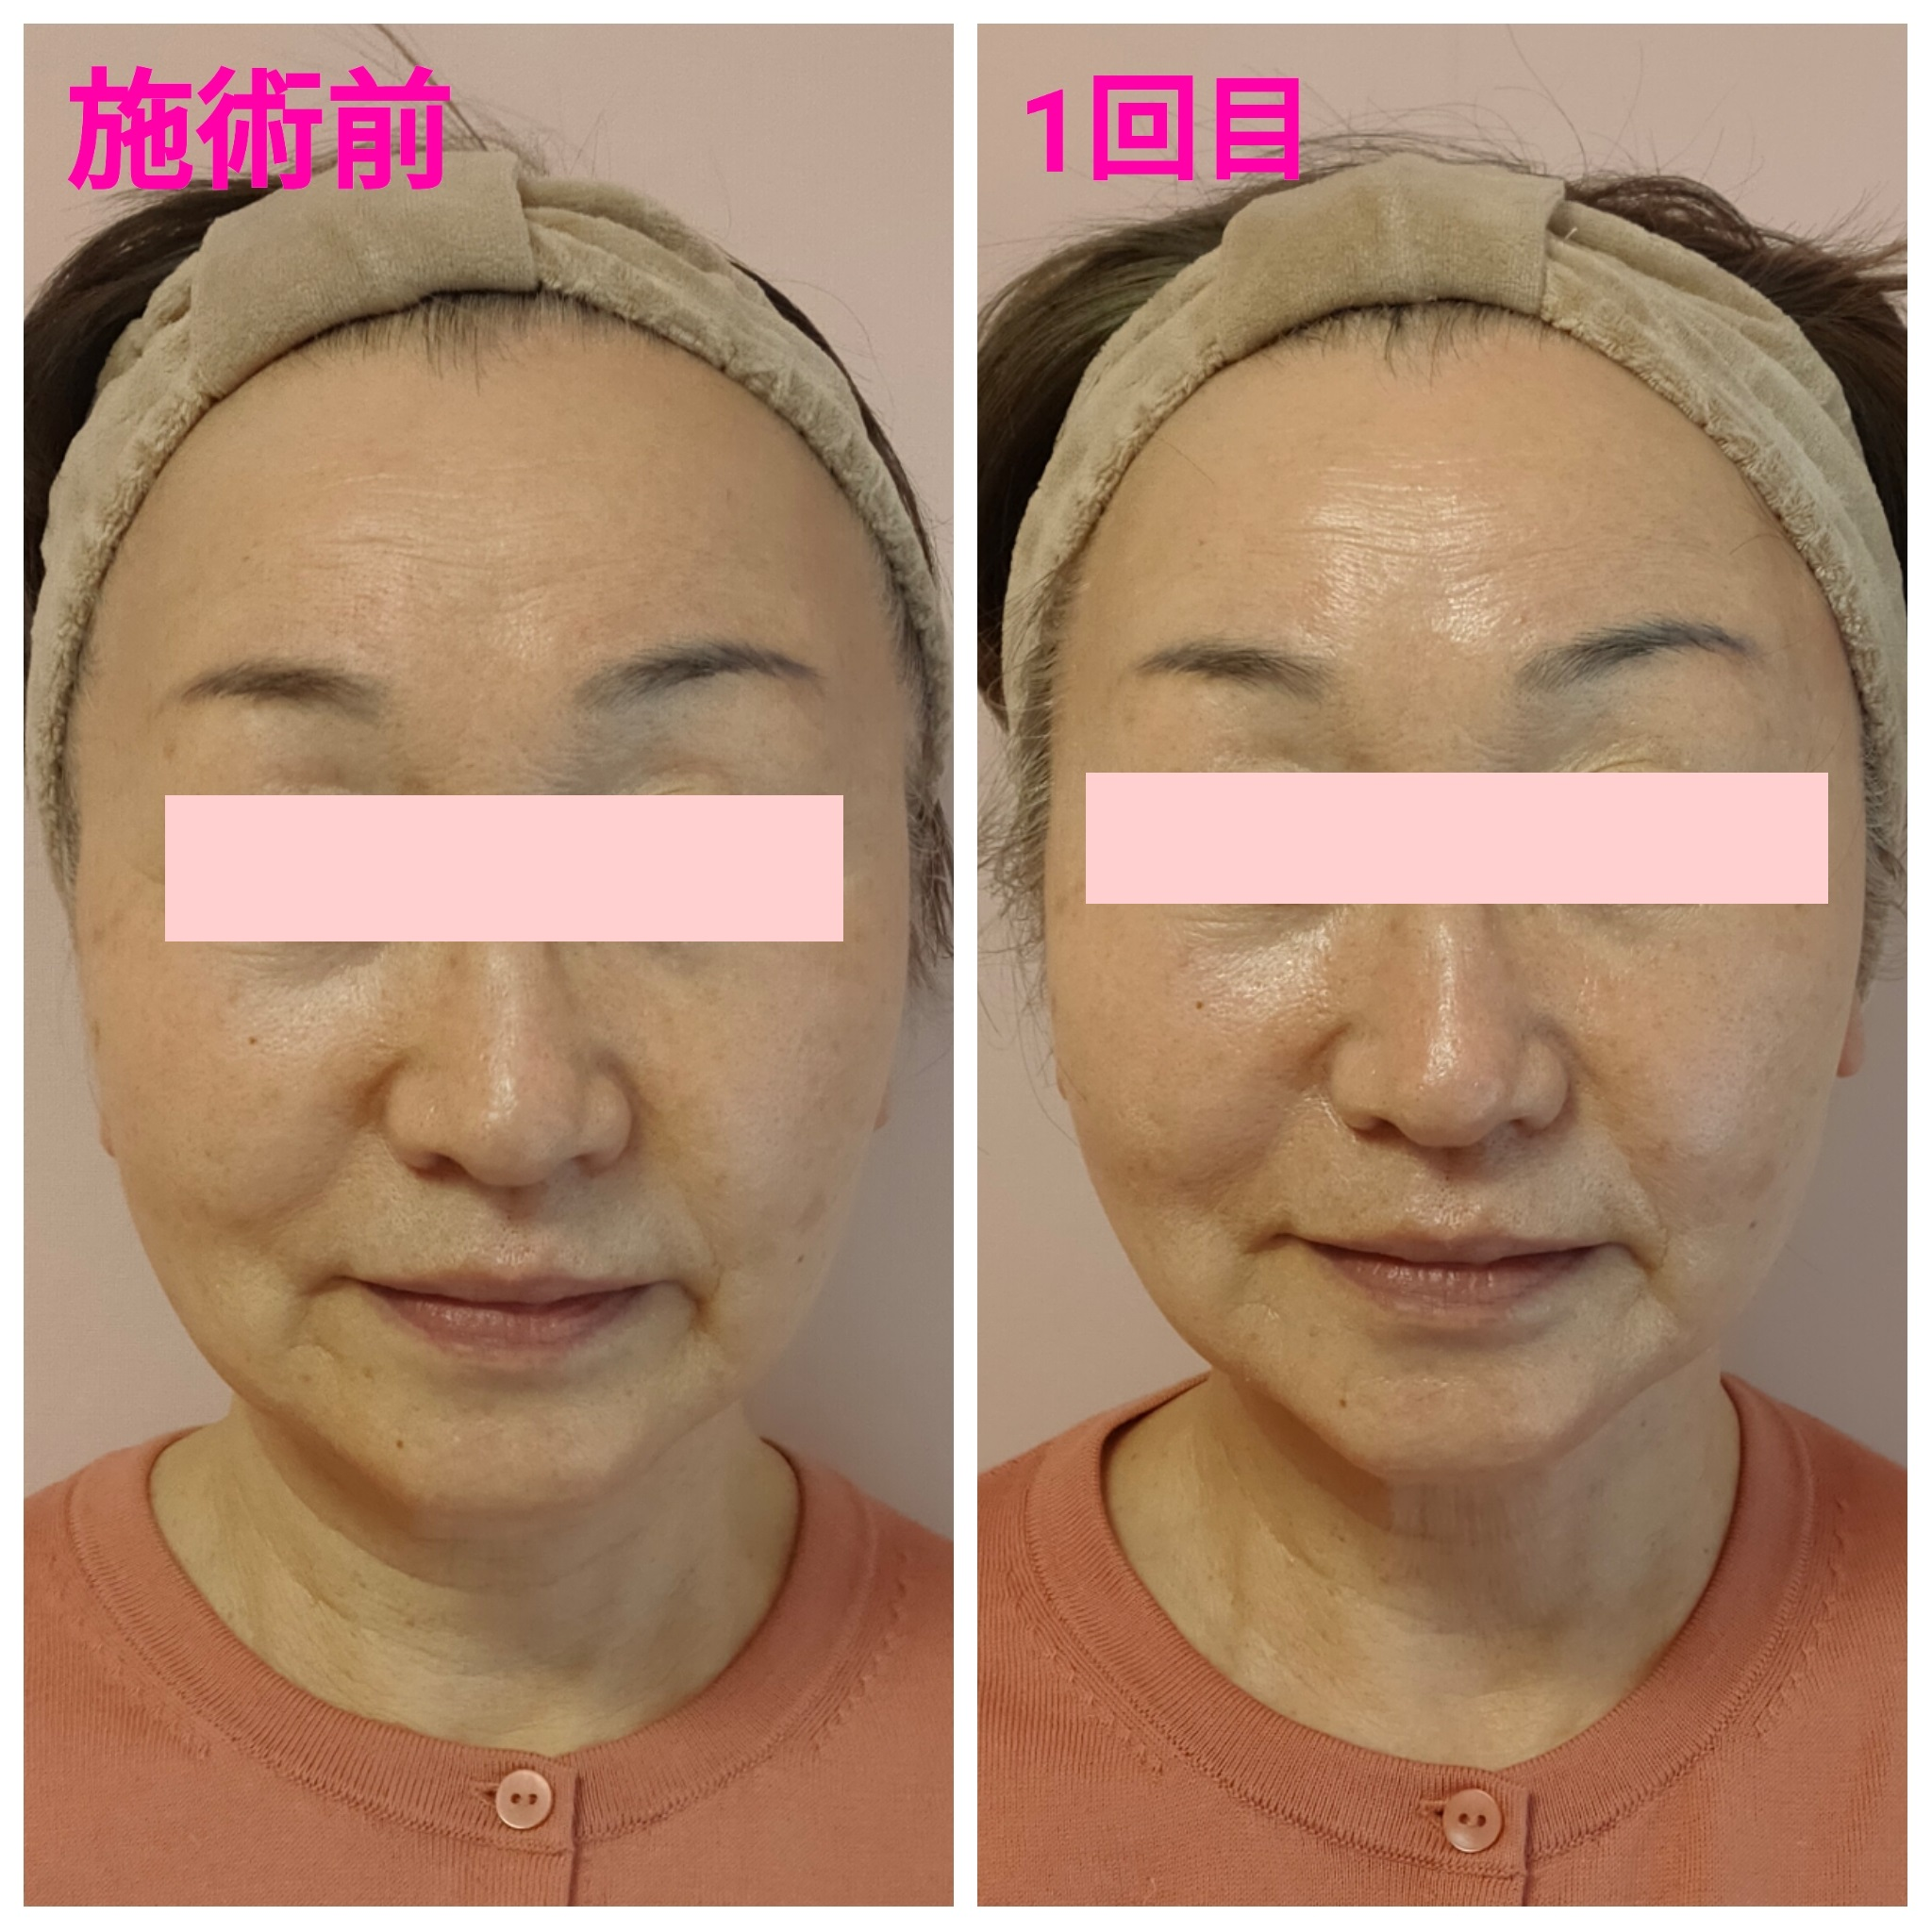 BeforeAfter画像